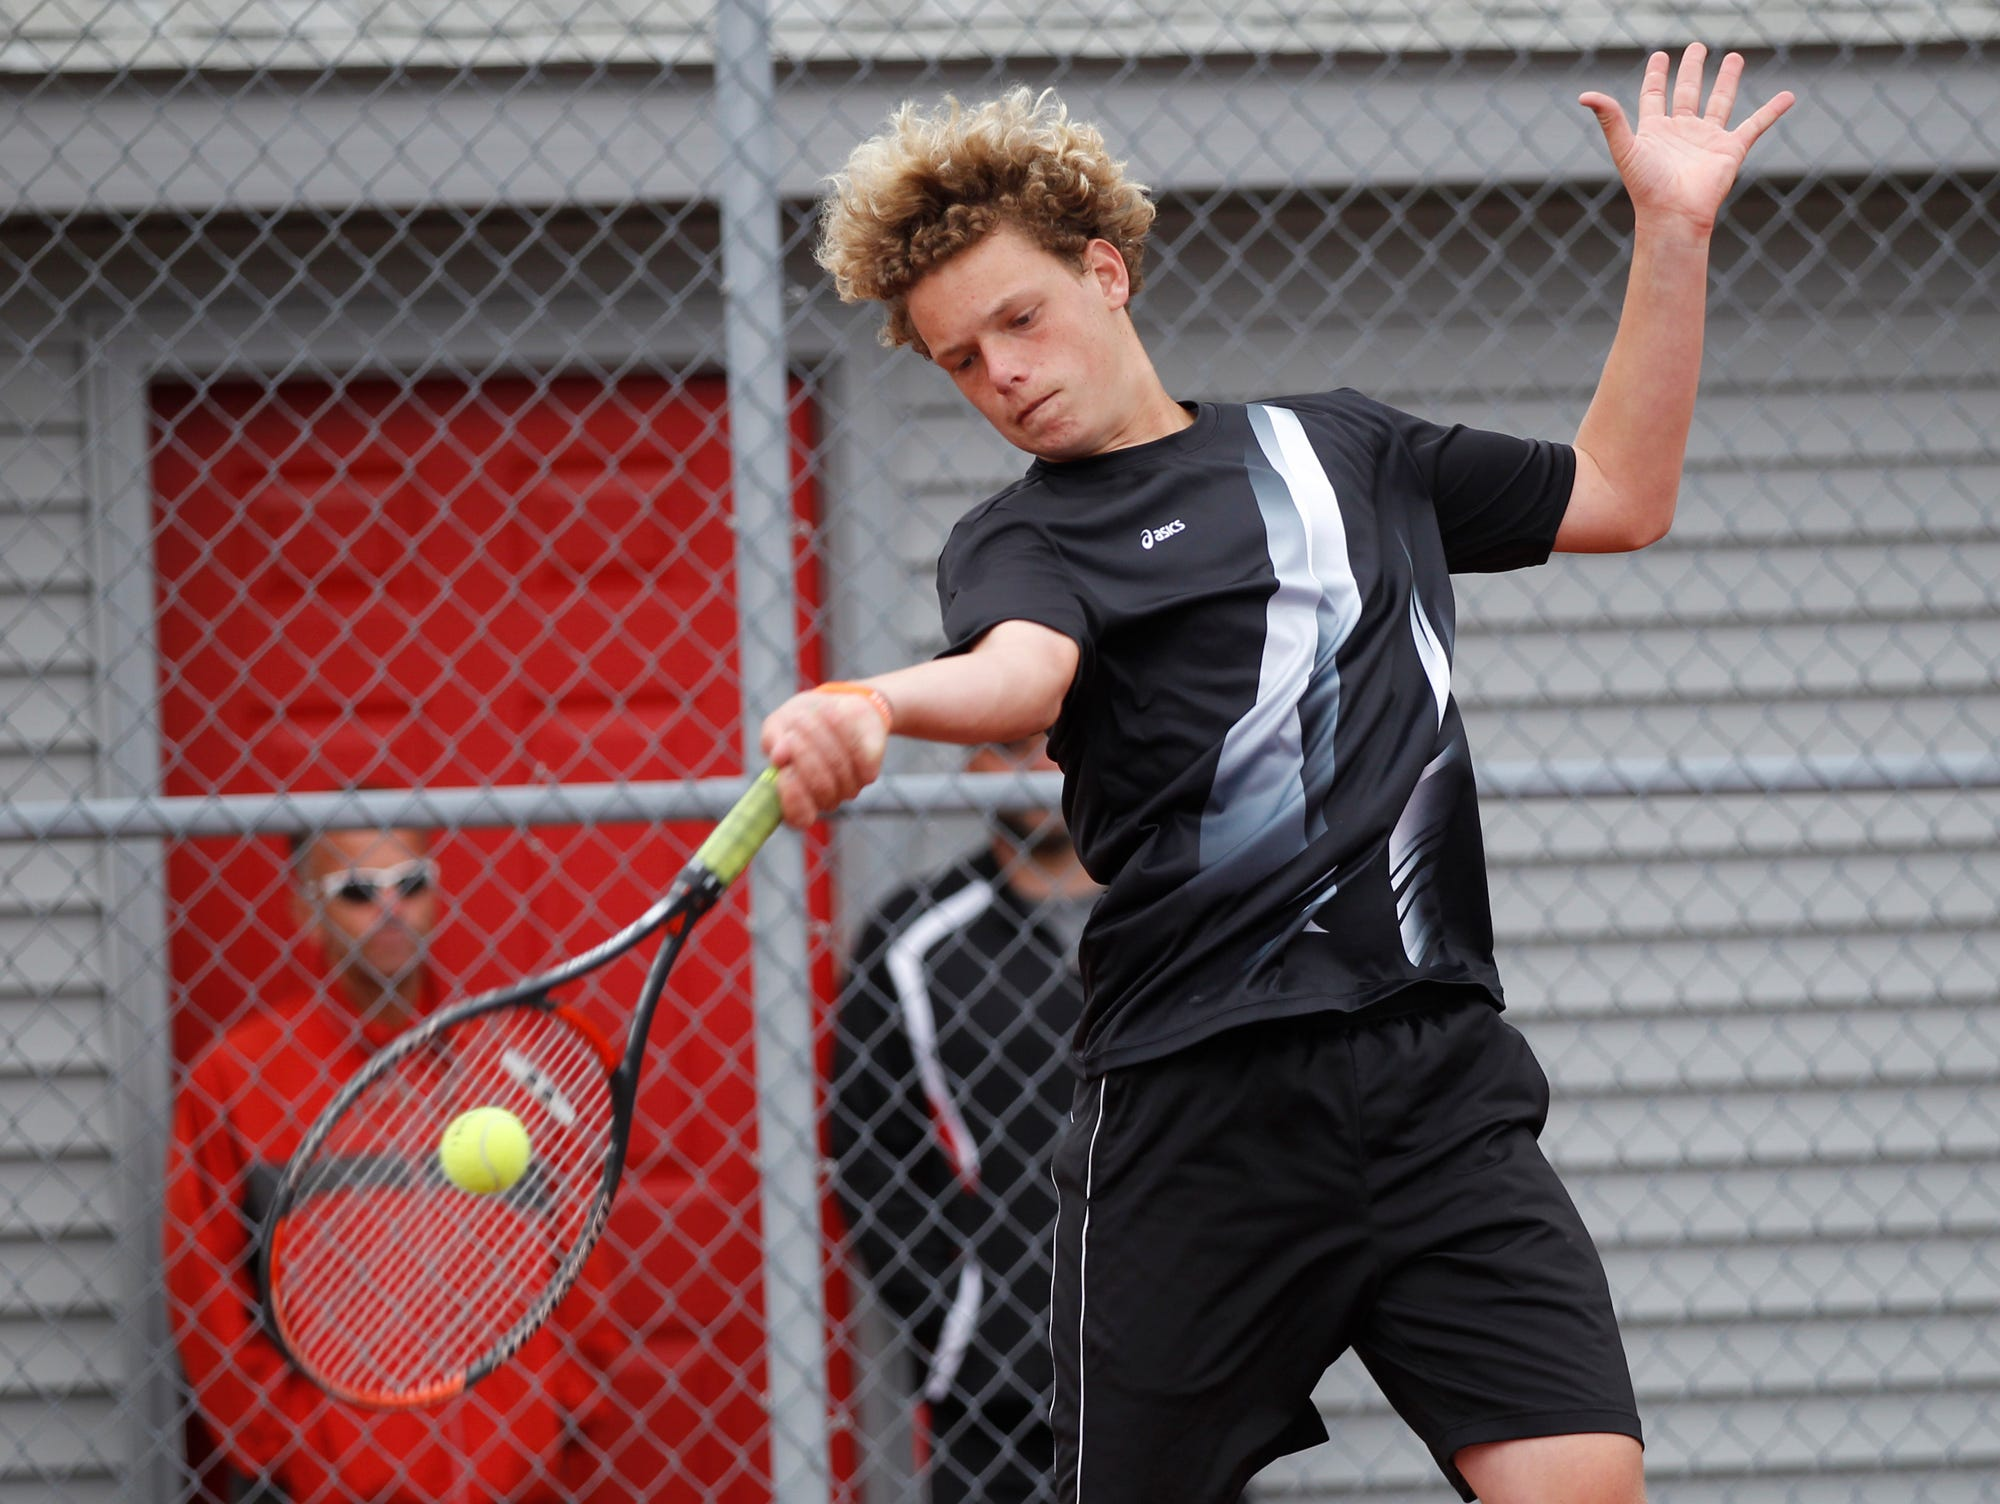 Lafayette Jeff's Aden Beaver with a return as he and Brayden Williams face West Lafaytte's Brian Mi and Jethro Zhou at No. 1 doubles during the boys tennis sectional championship Friday, October 2, 2015, at Cumberland Courts in West Lafayette.